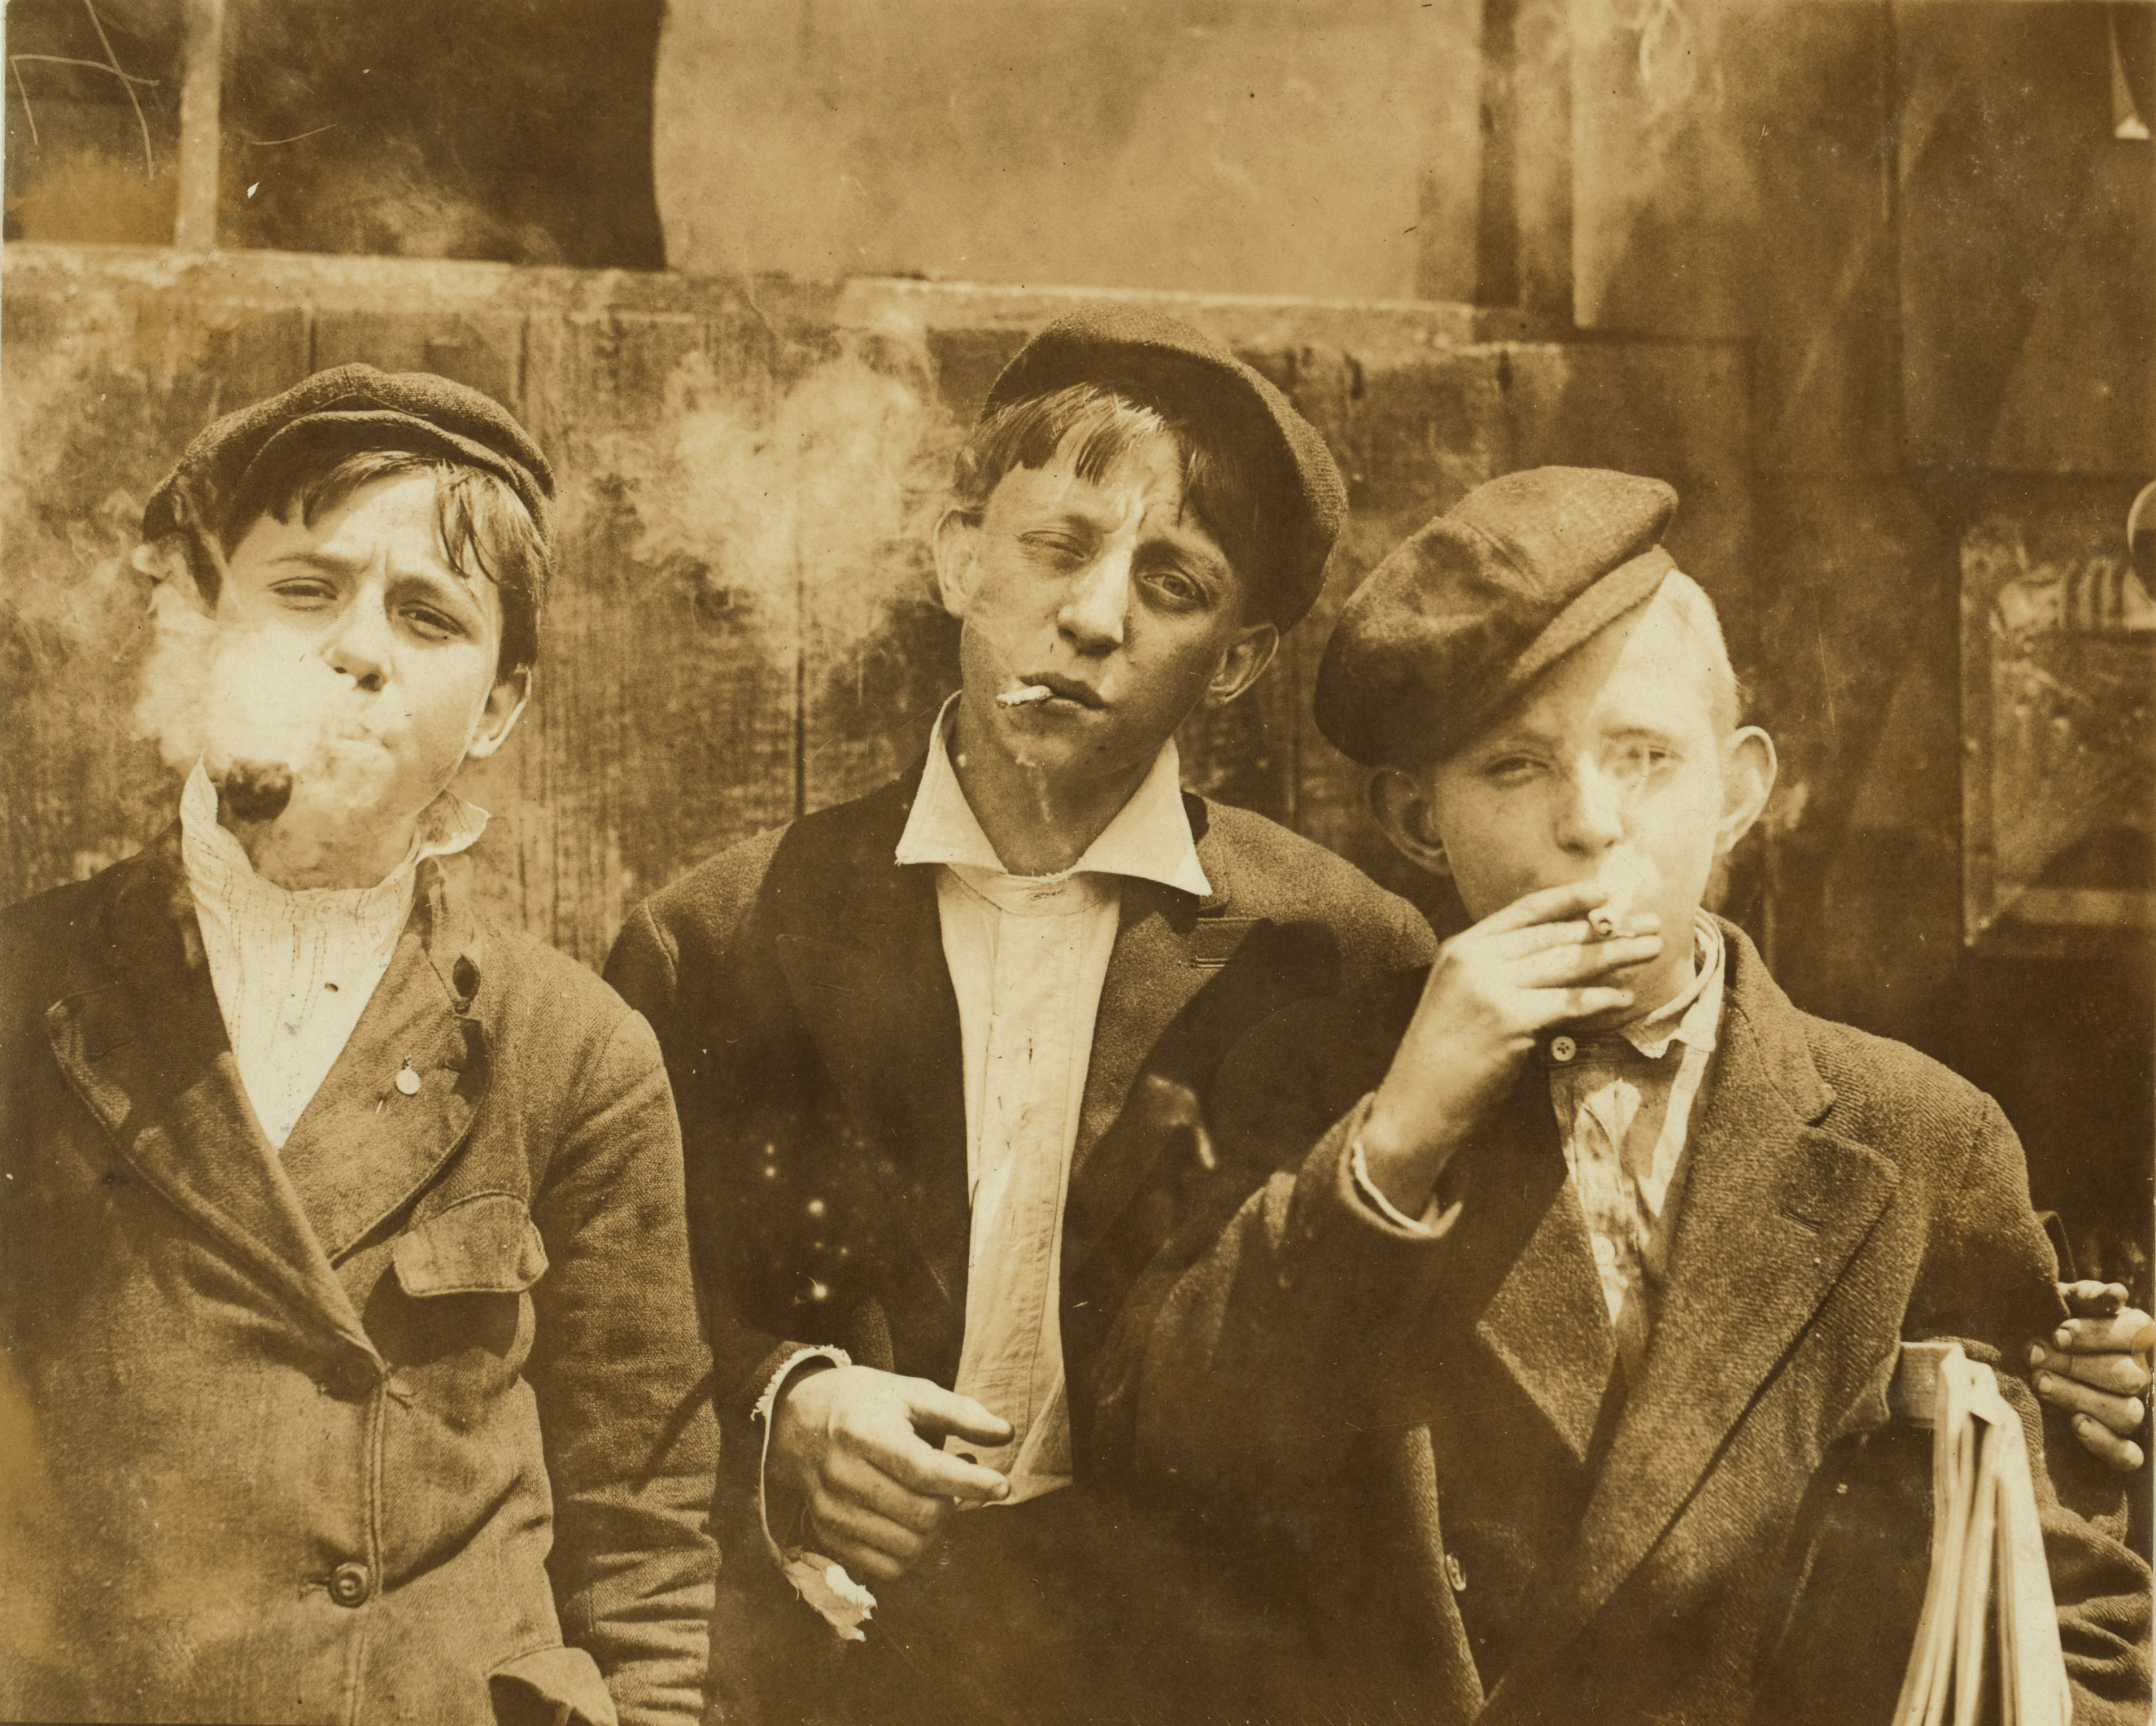 11:00 A. M . Monday, May 9th, 1910. Newsies at Skeeter's Branch, Jefferson near Franklin. They were all smoking. May 1910. St. Louis, Missouri.